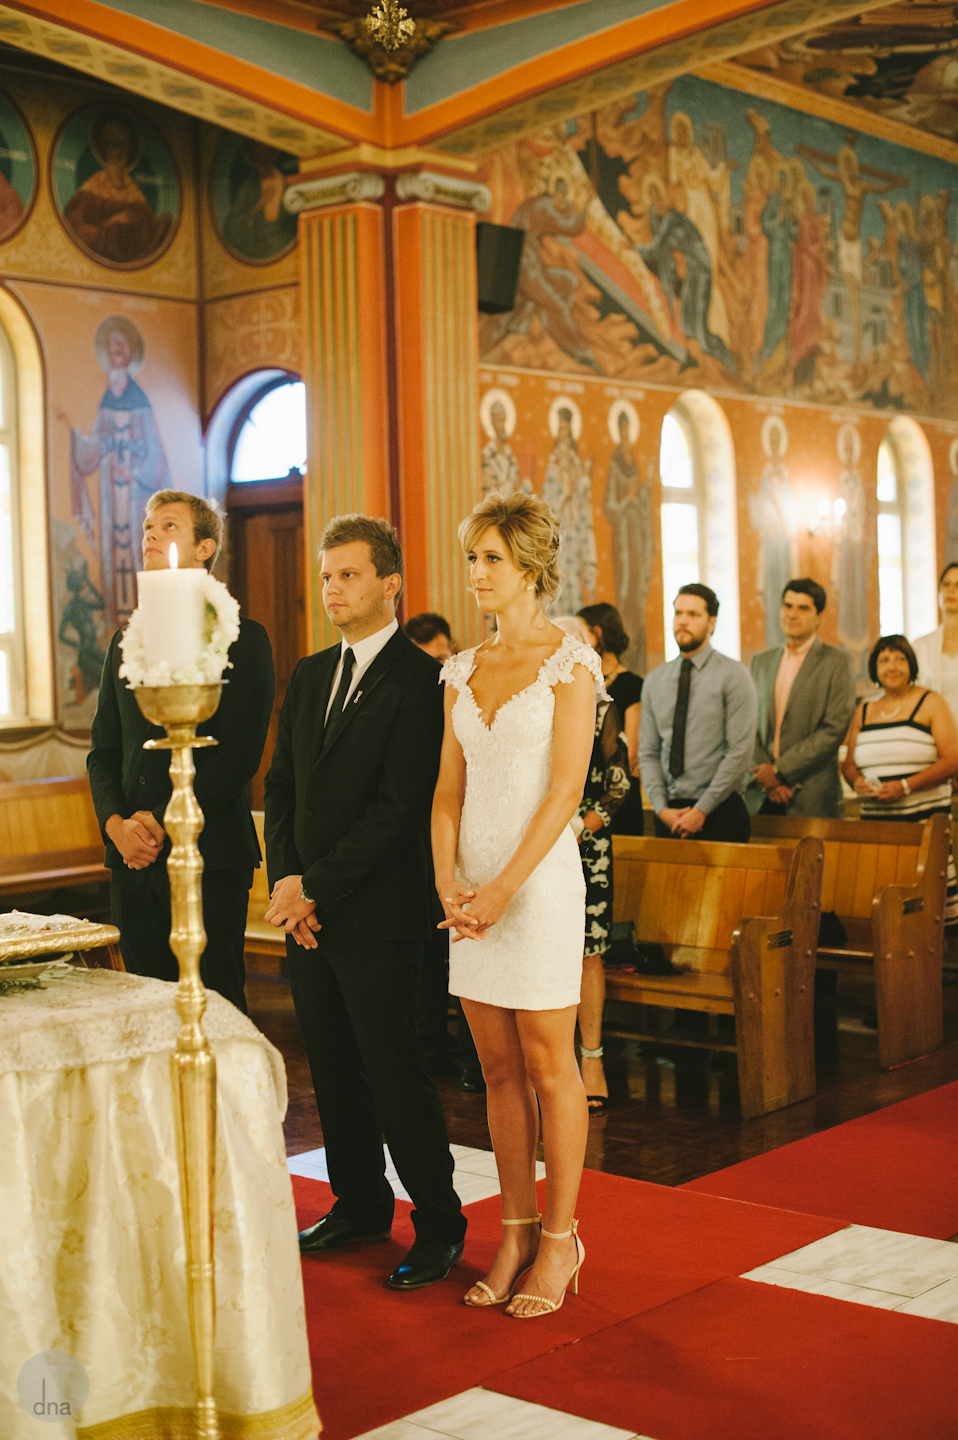 ceremony Chrisli and Matt wedding Greek Orthodox Church Woodstock Cape Town South Africa shot by dna photographers 223.jpg